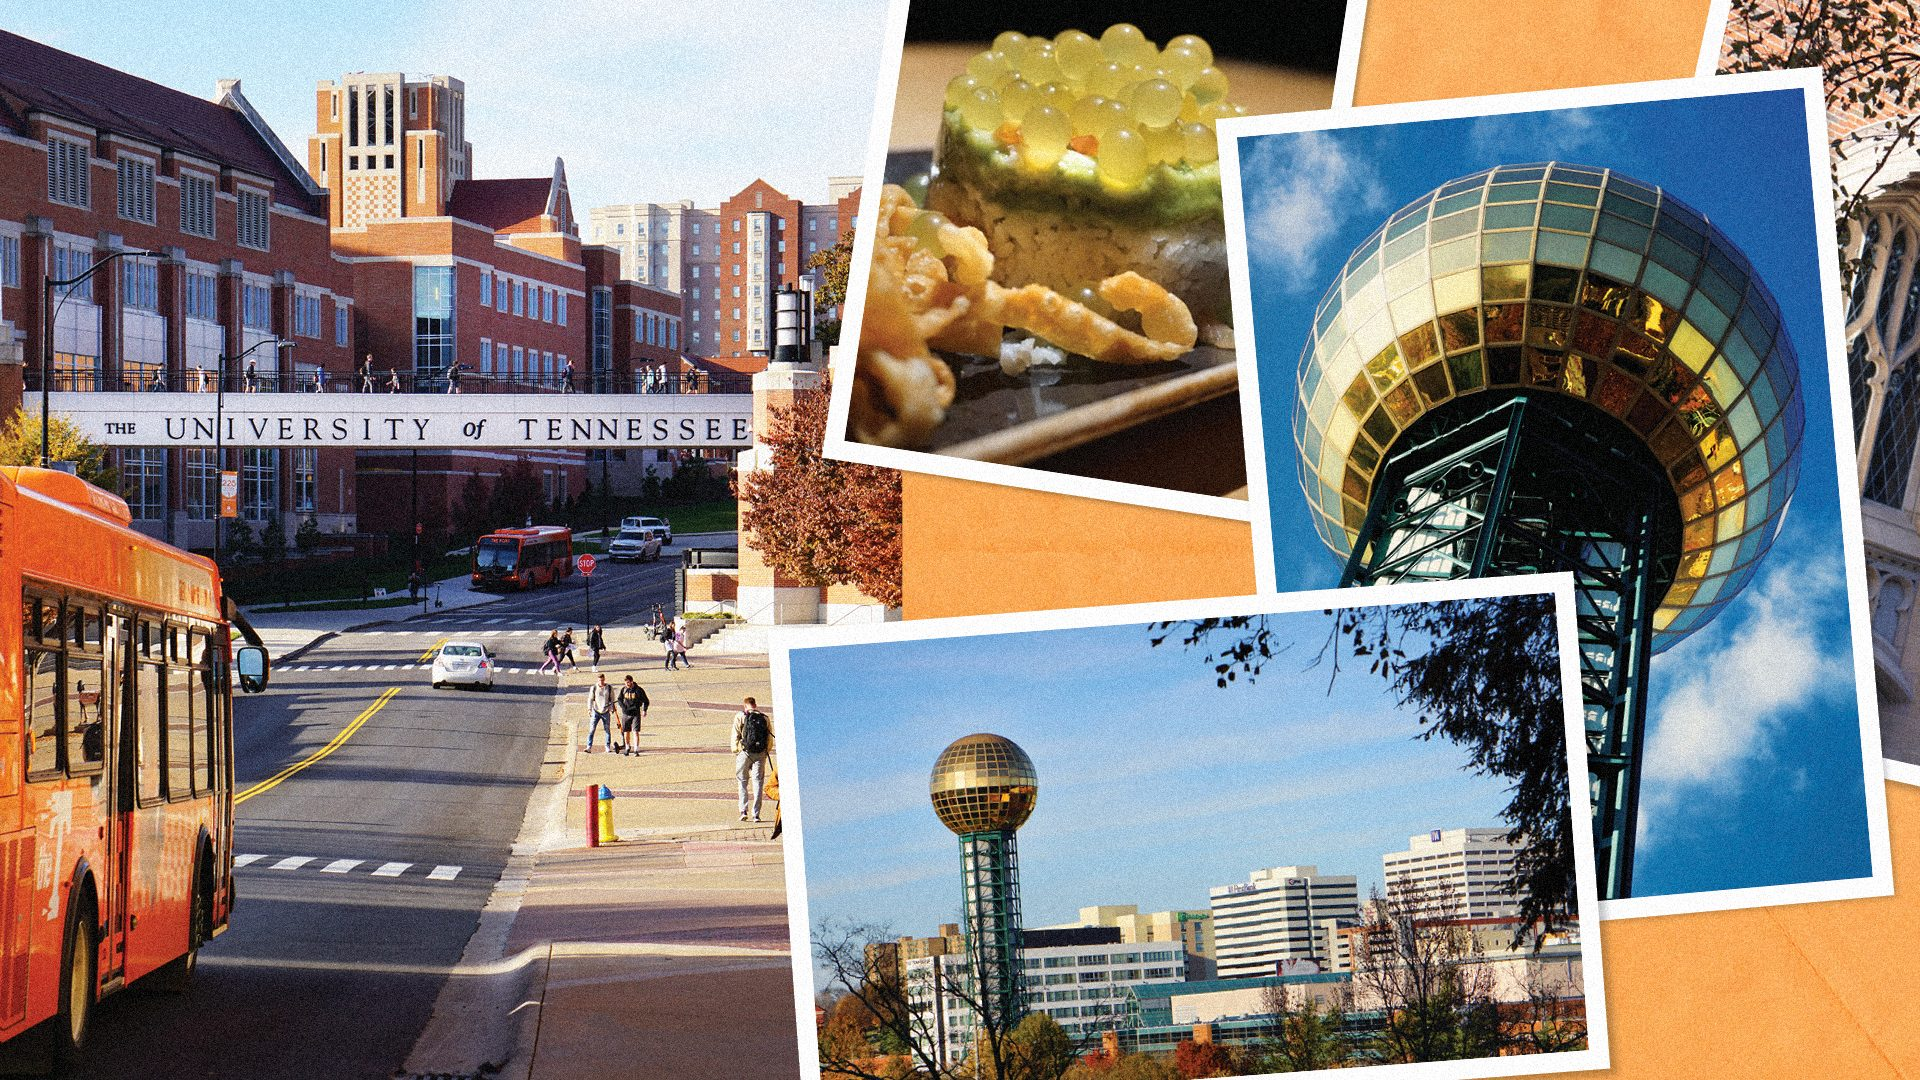 Collage of images showcasing Knoxville, Tennessee